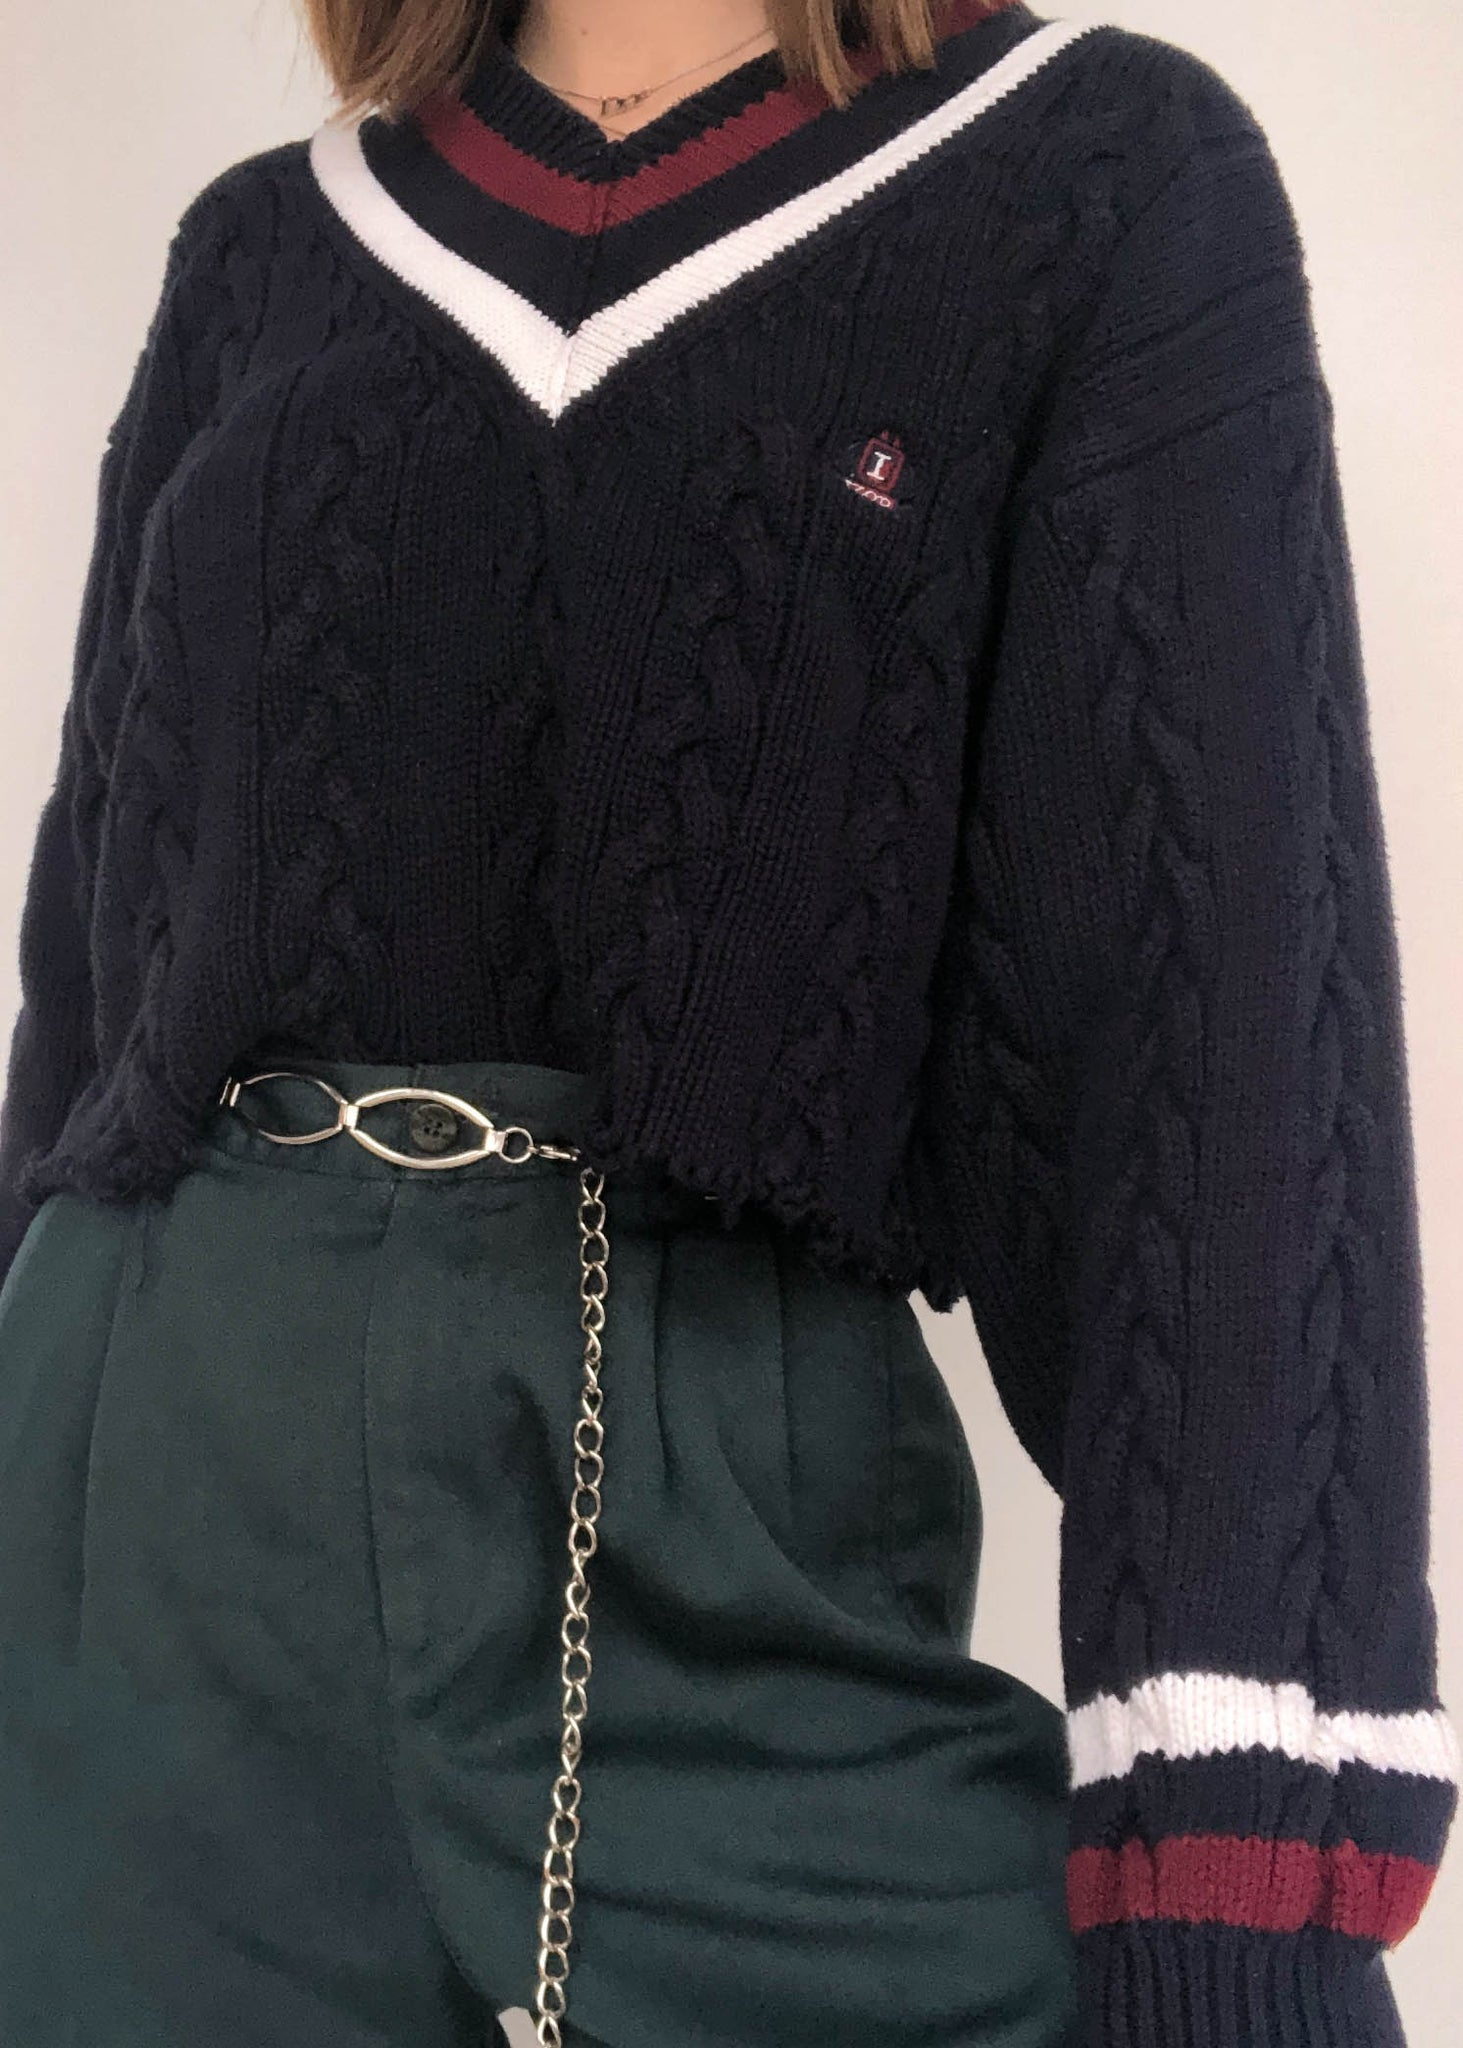 Izod Professor Sweater